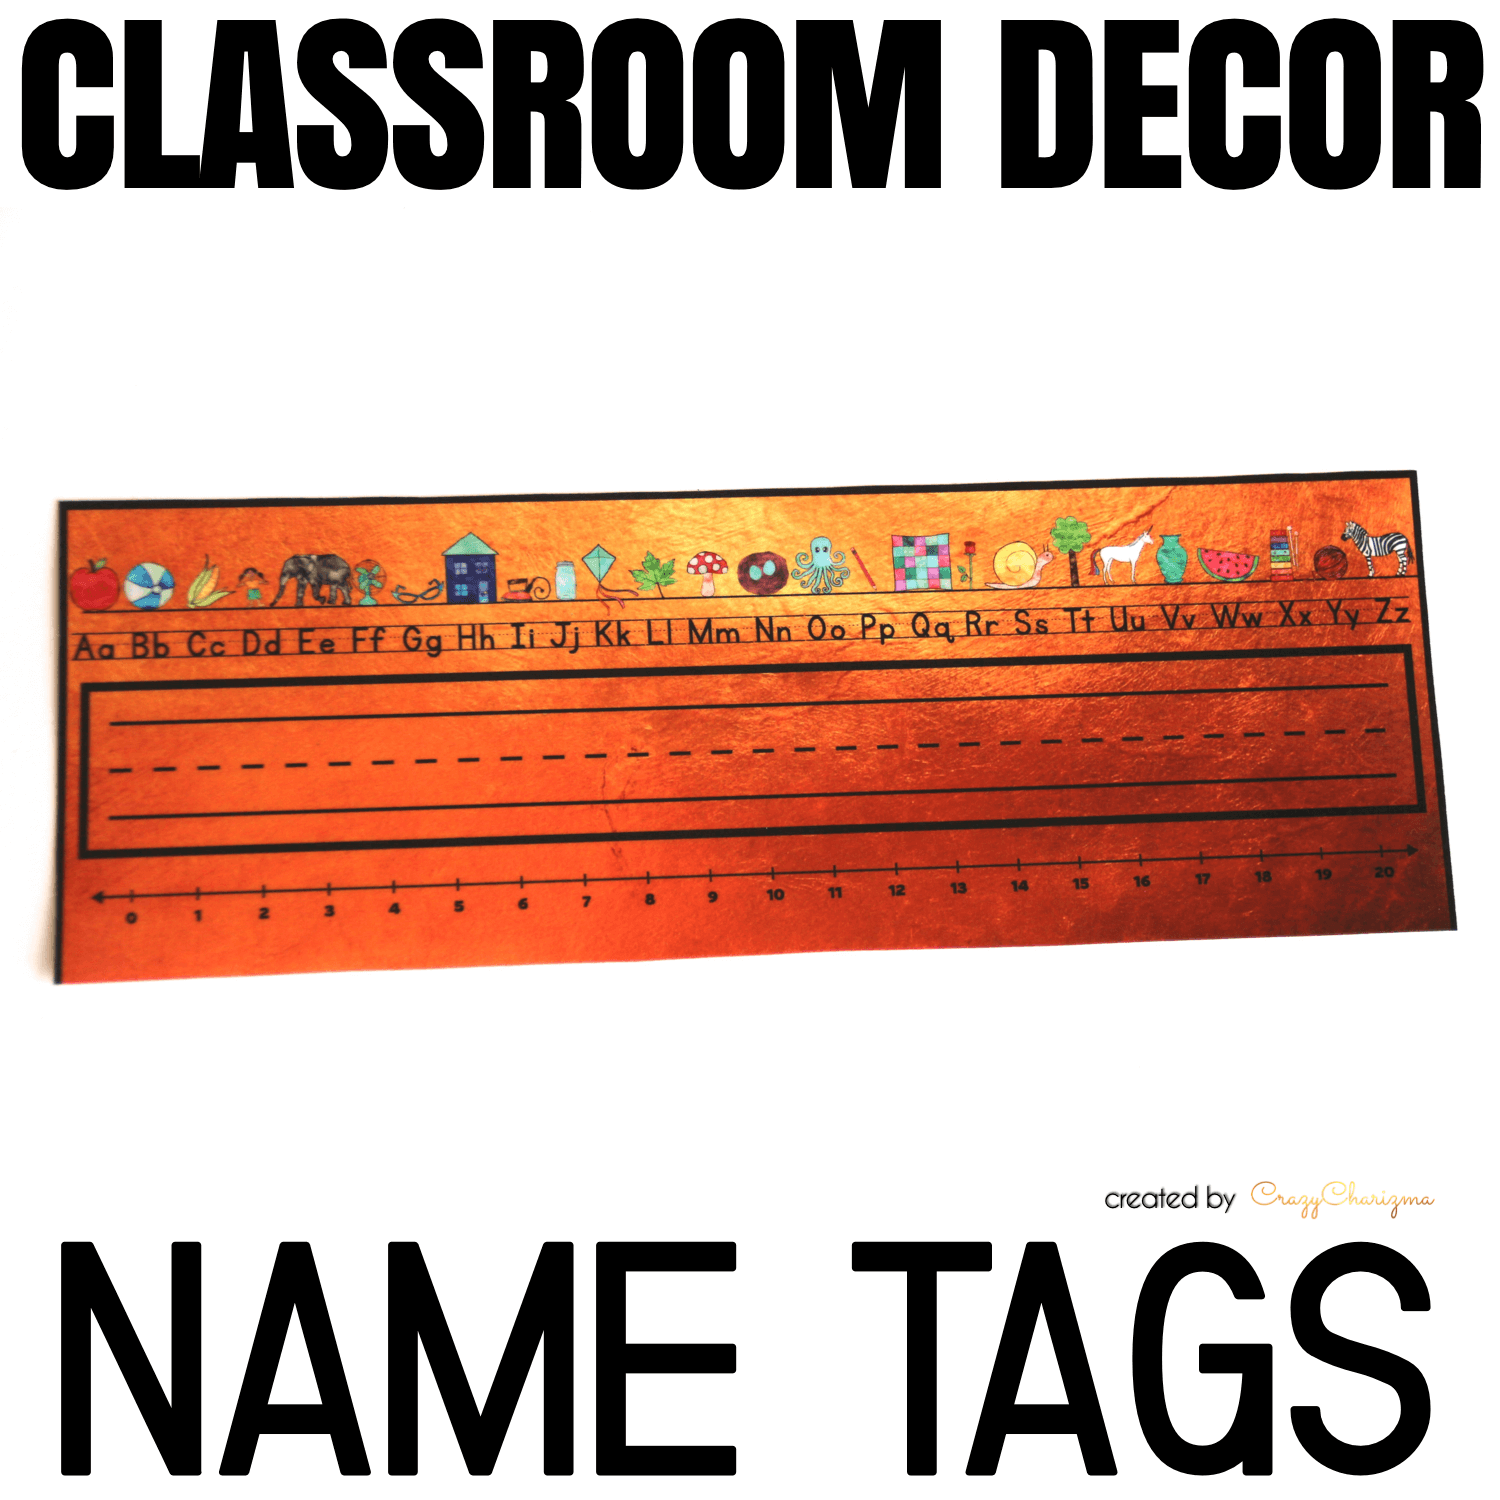 Decorate your classroom this year with this stylish BLACK and GOLD decor set. Find inside vibrant and bright Name Tags. Just print, laminate and then write students' names on it!